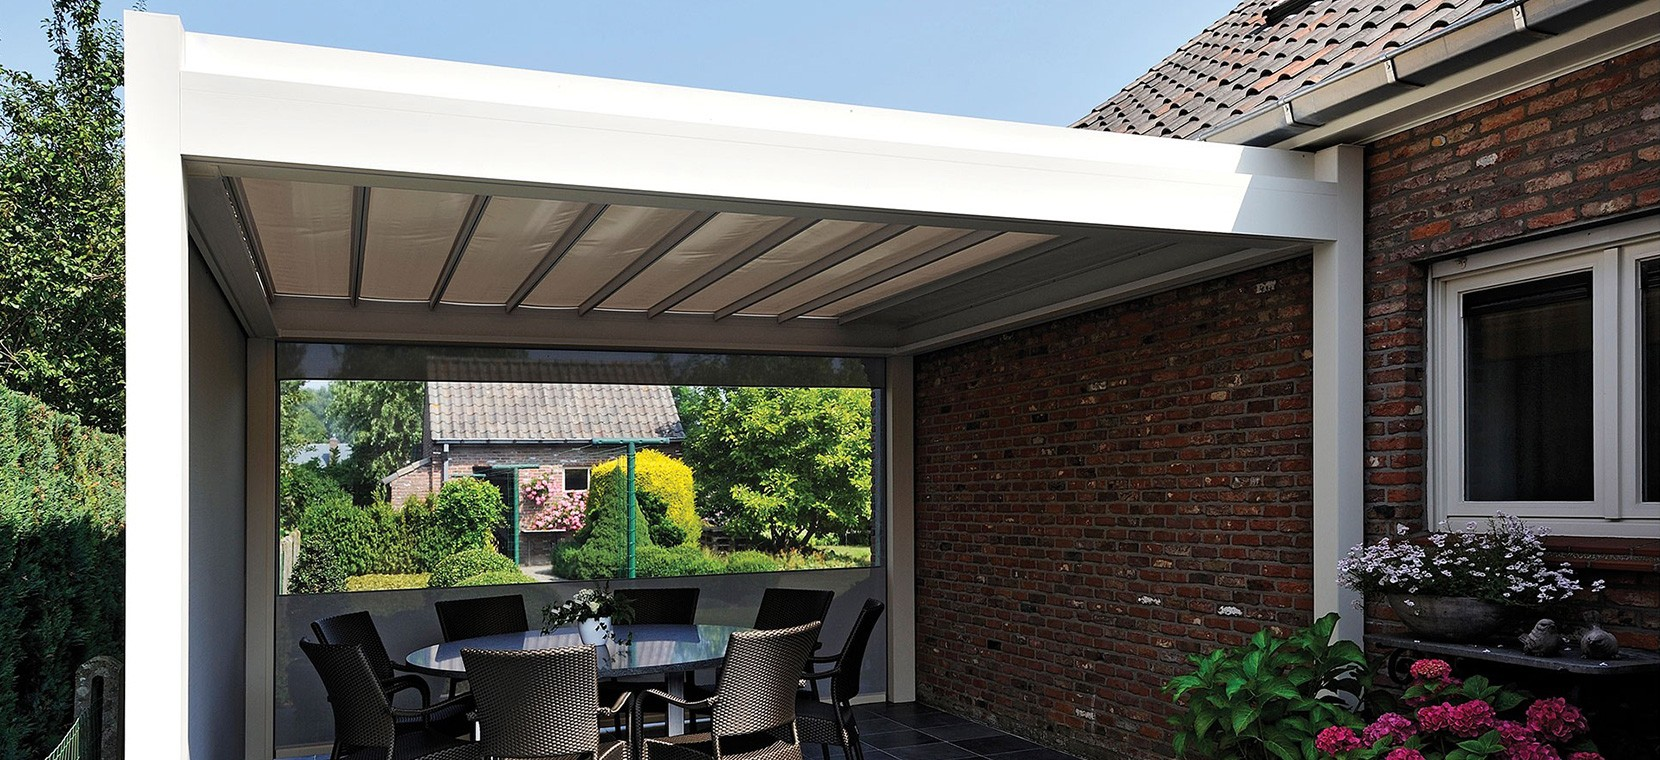 Lean-to patio cover with louvred roof